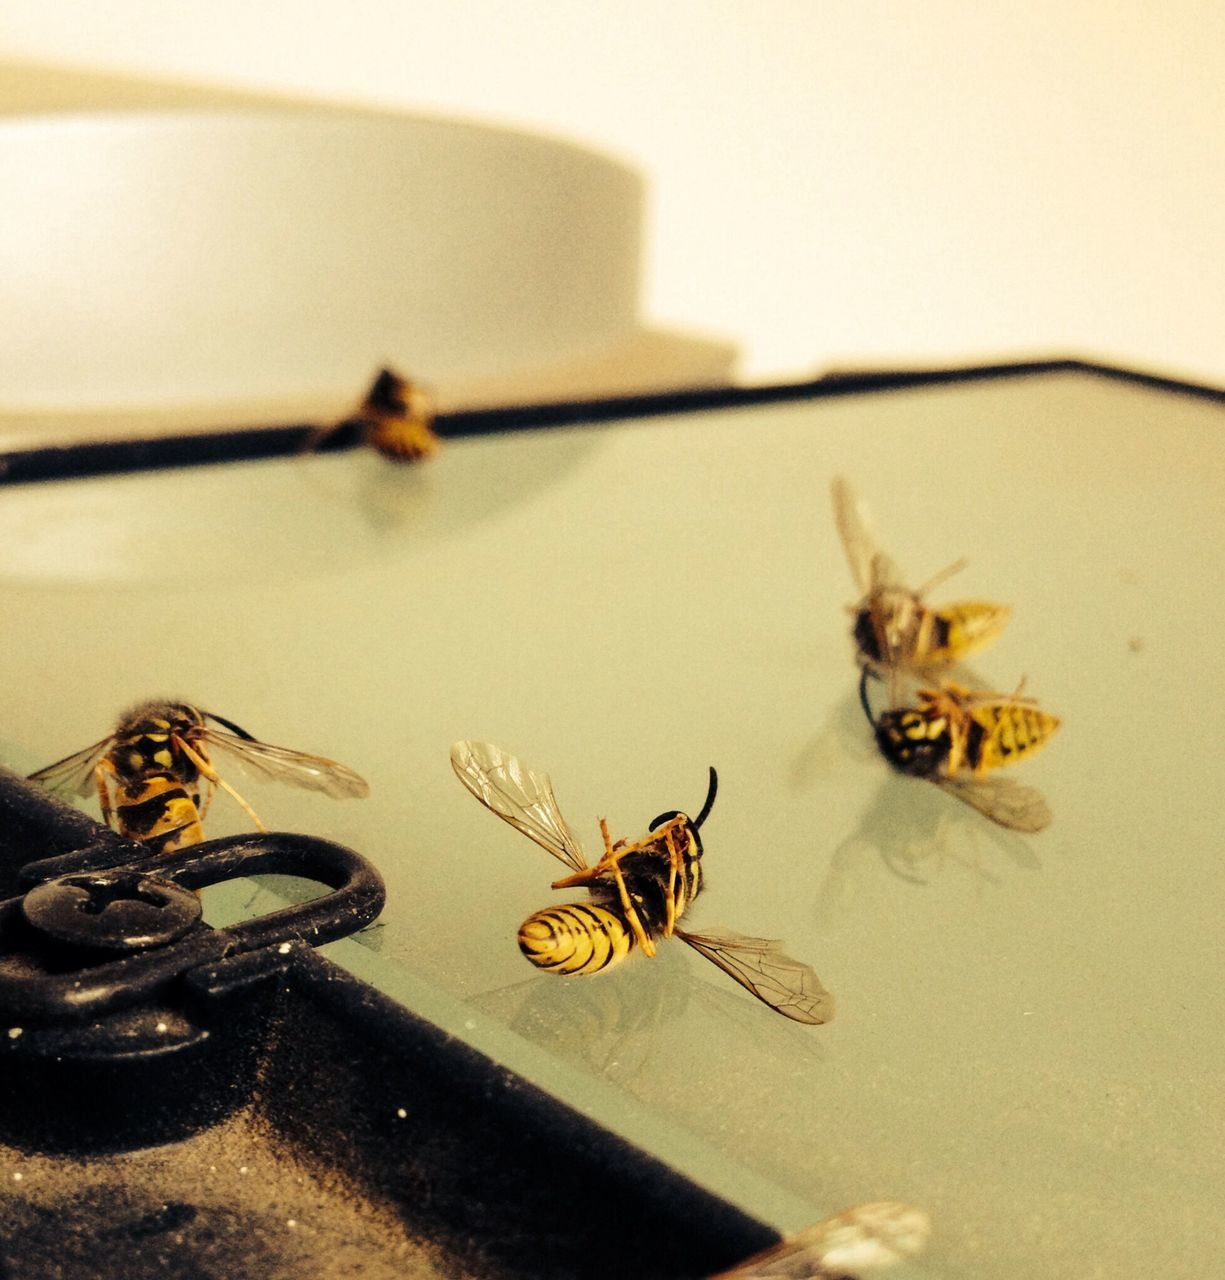 Dead Wasps On Table